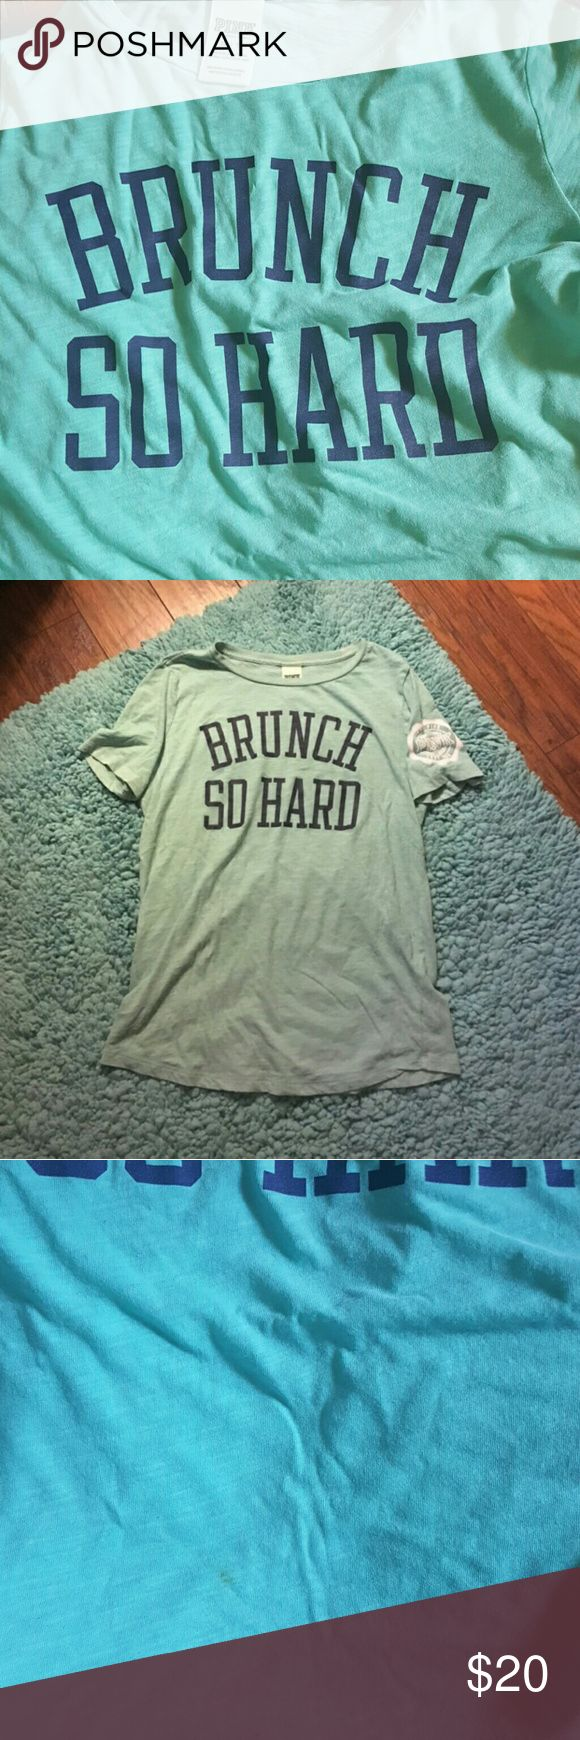 VS PINK Brunch So Hard tshirt Paid via P ay Pal  $17 shipped   Minor stain shown, not noticeable when worn or from far. Tag says xsmall could fit small PINK Victoria's Secret Tops Tees - Short Sleeve